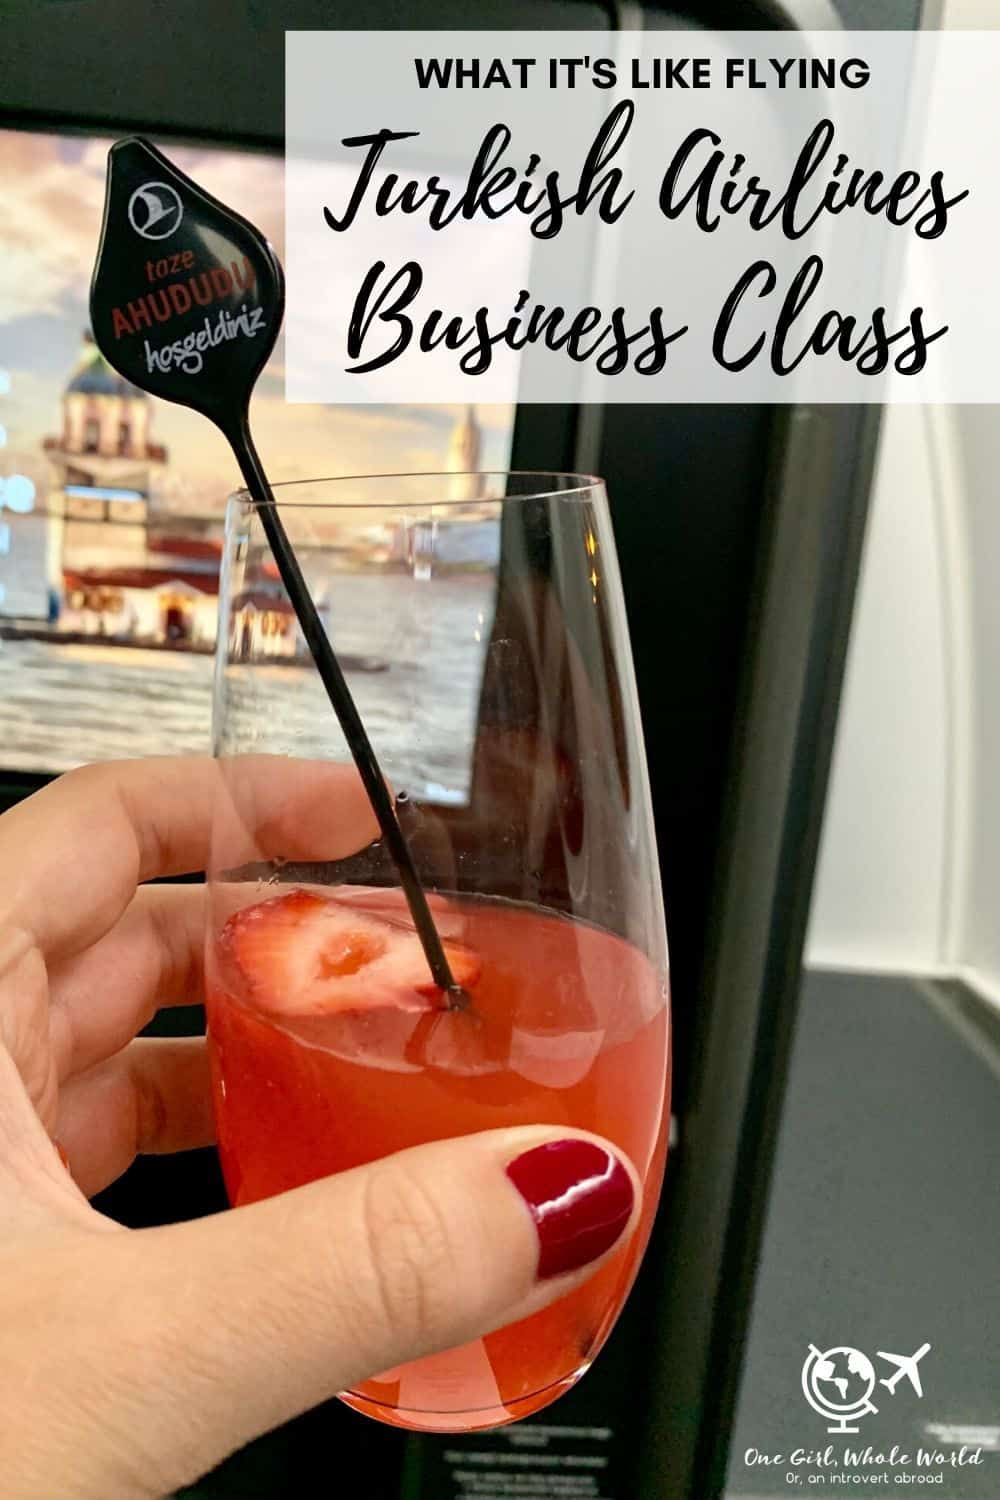 Turkish Airlines Business Class: What To Expect | A review of what it's like flying in business class on Turkish Airlines between the U.S. and Istanbul, from the food to service to seats. Includes details on the Turkish Airlines first class lounge in Istanbul. #luxury #splurge #businessclass #firstclass #turkishairlines #travelreviews